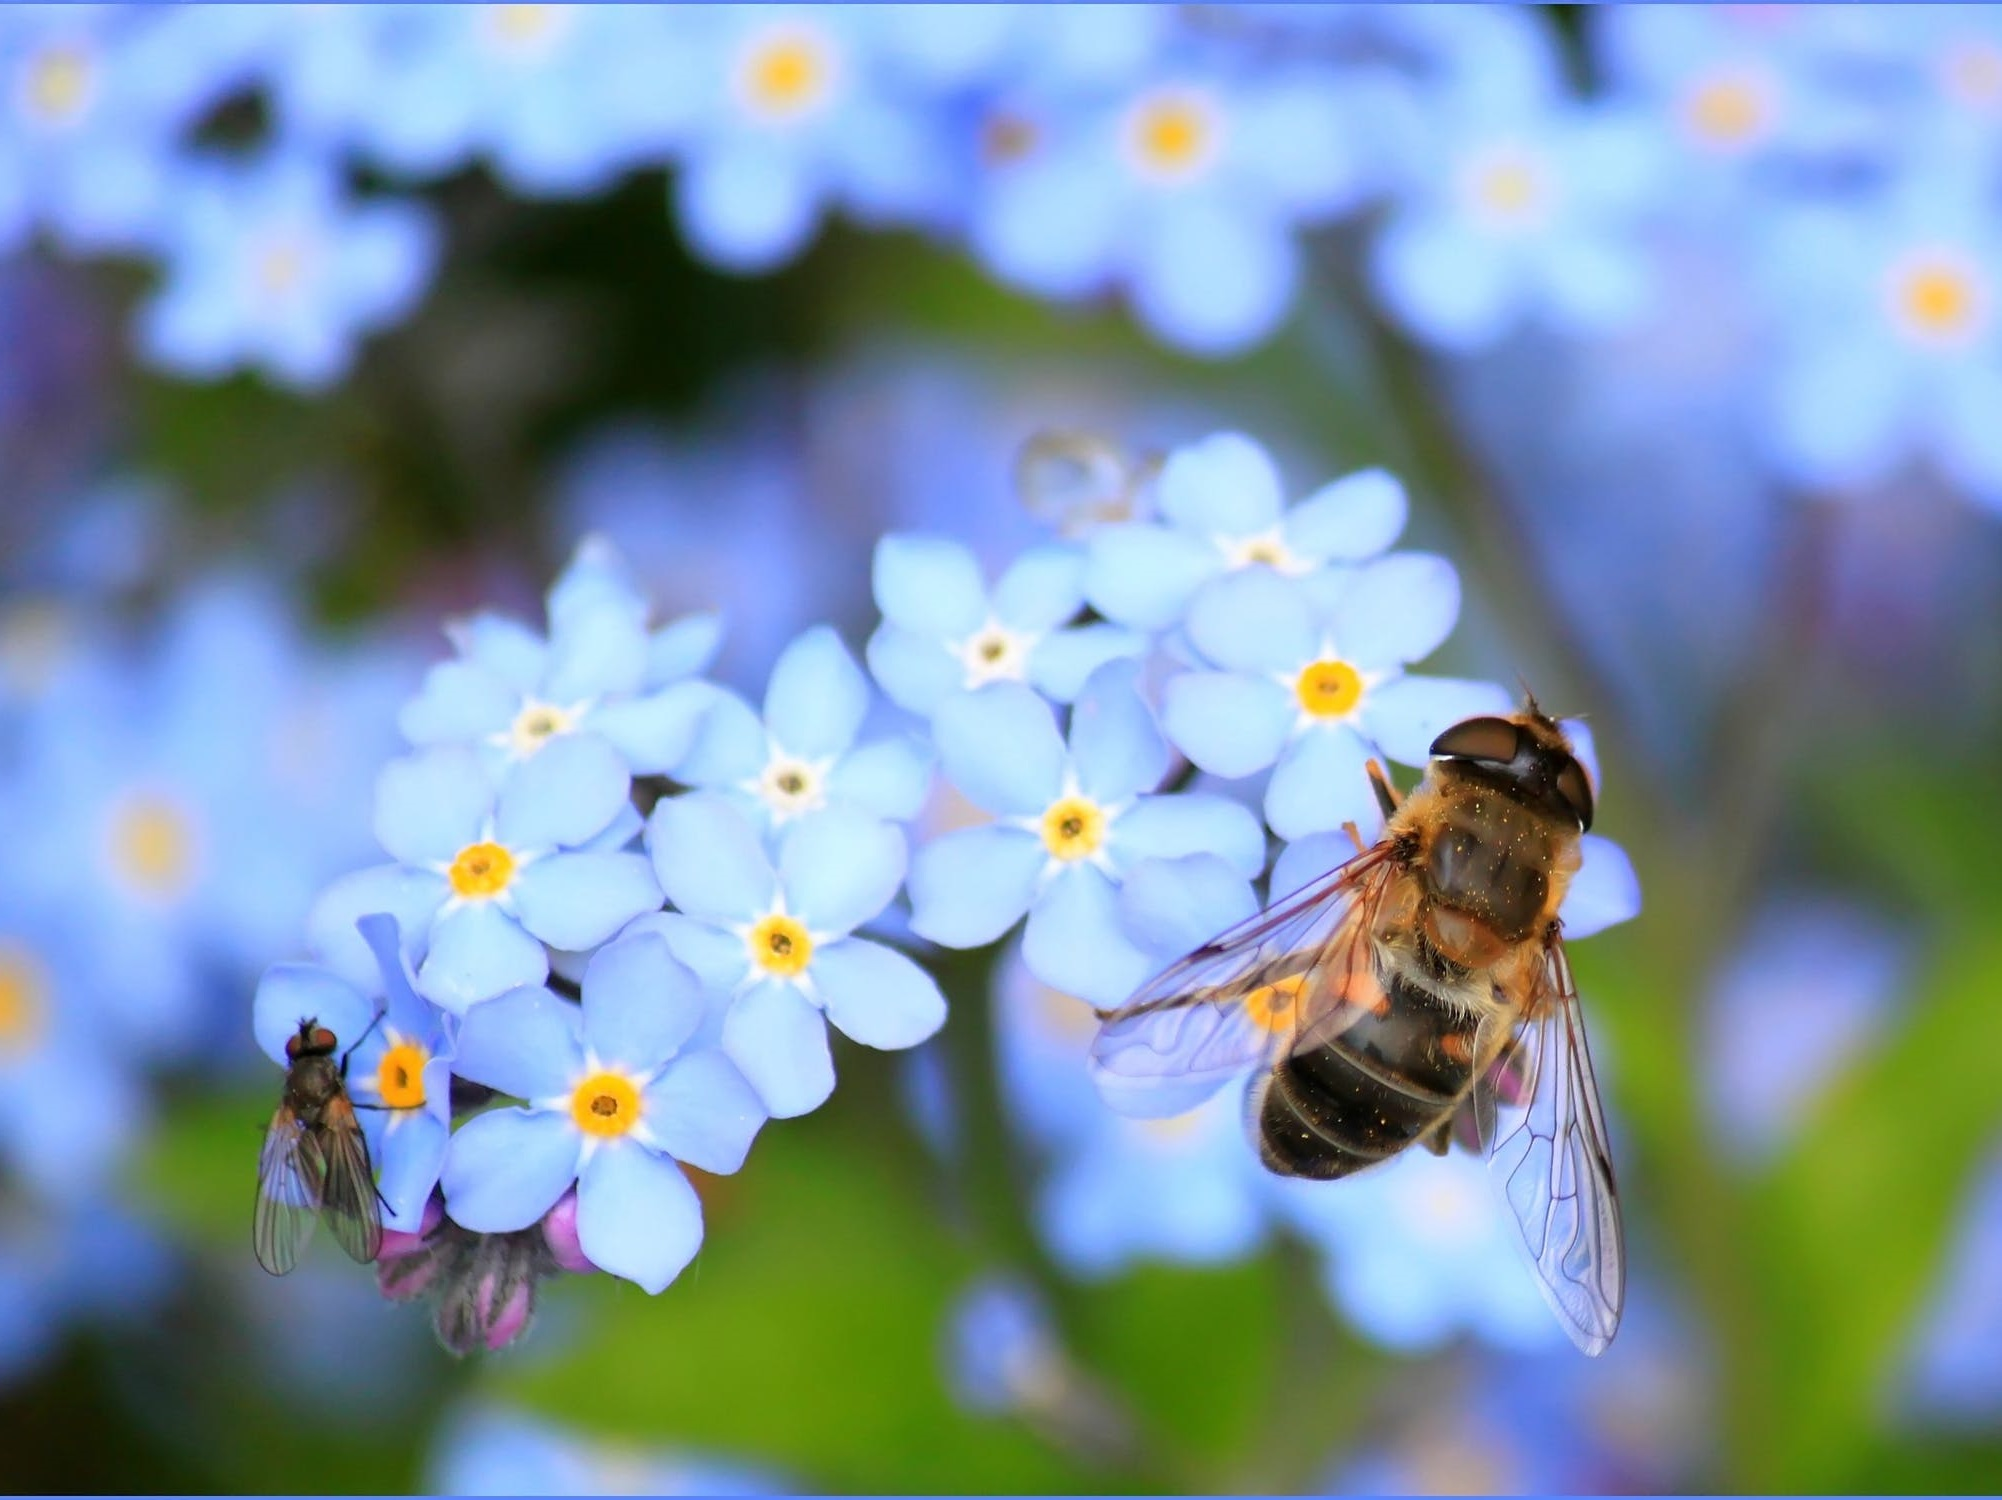 forget-me-not-hoverfly-fly-flower-60579-158349876226322051052-1.jpeg